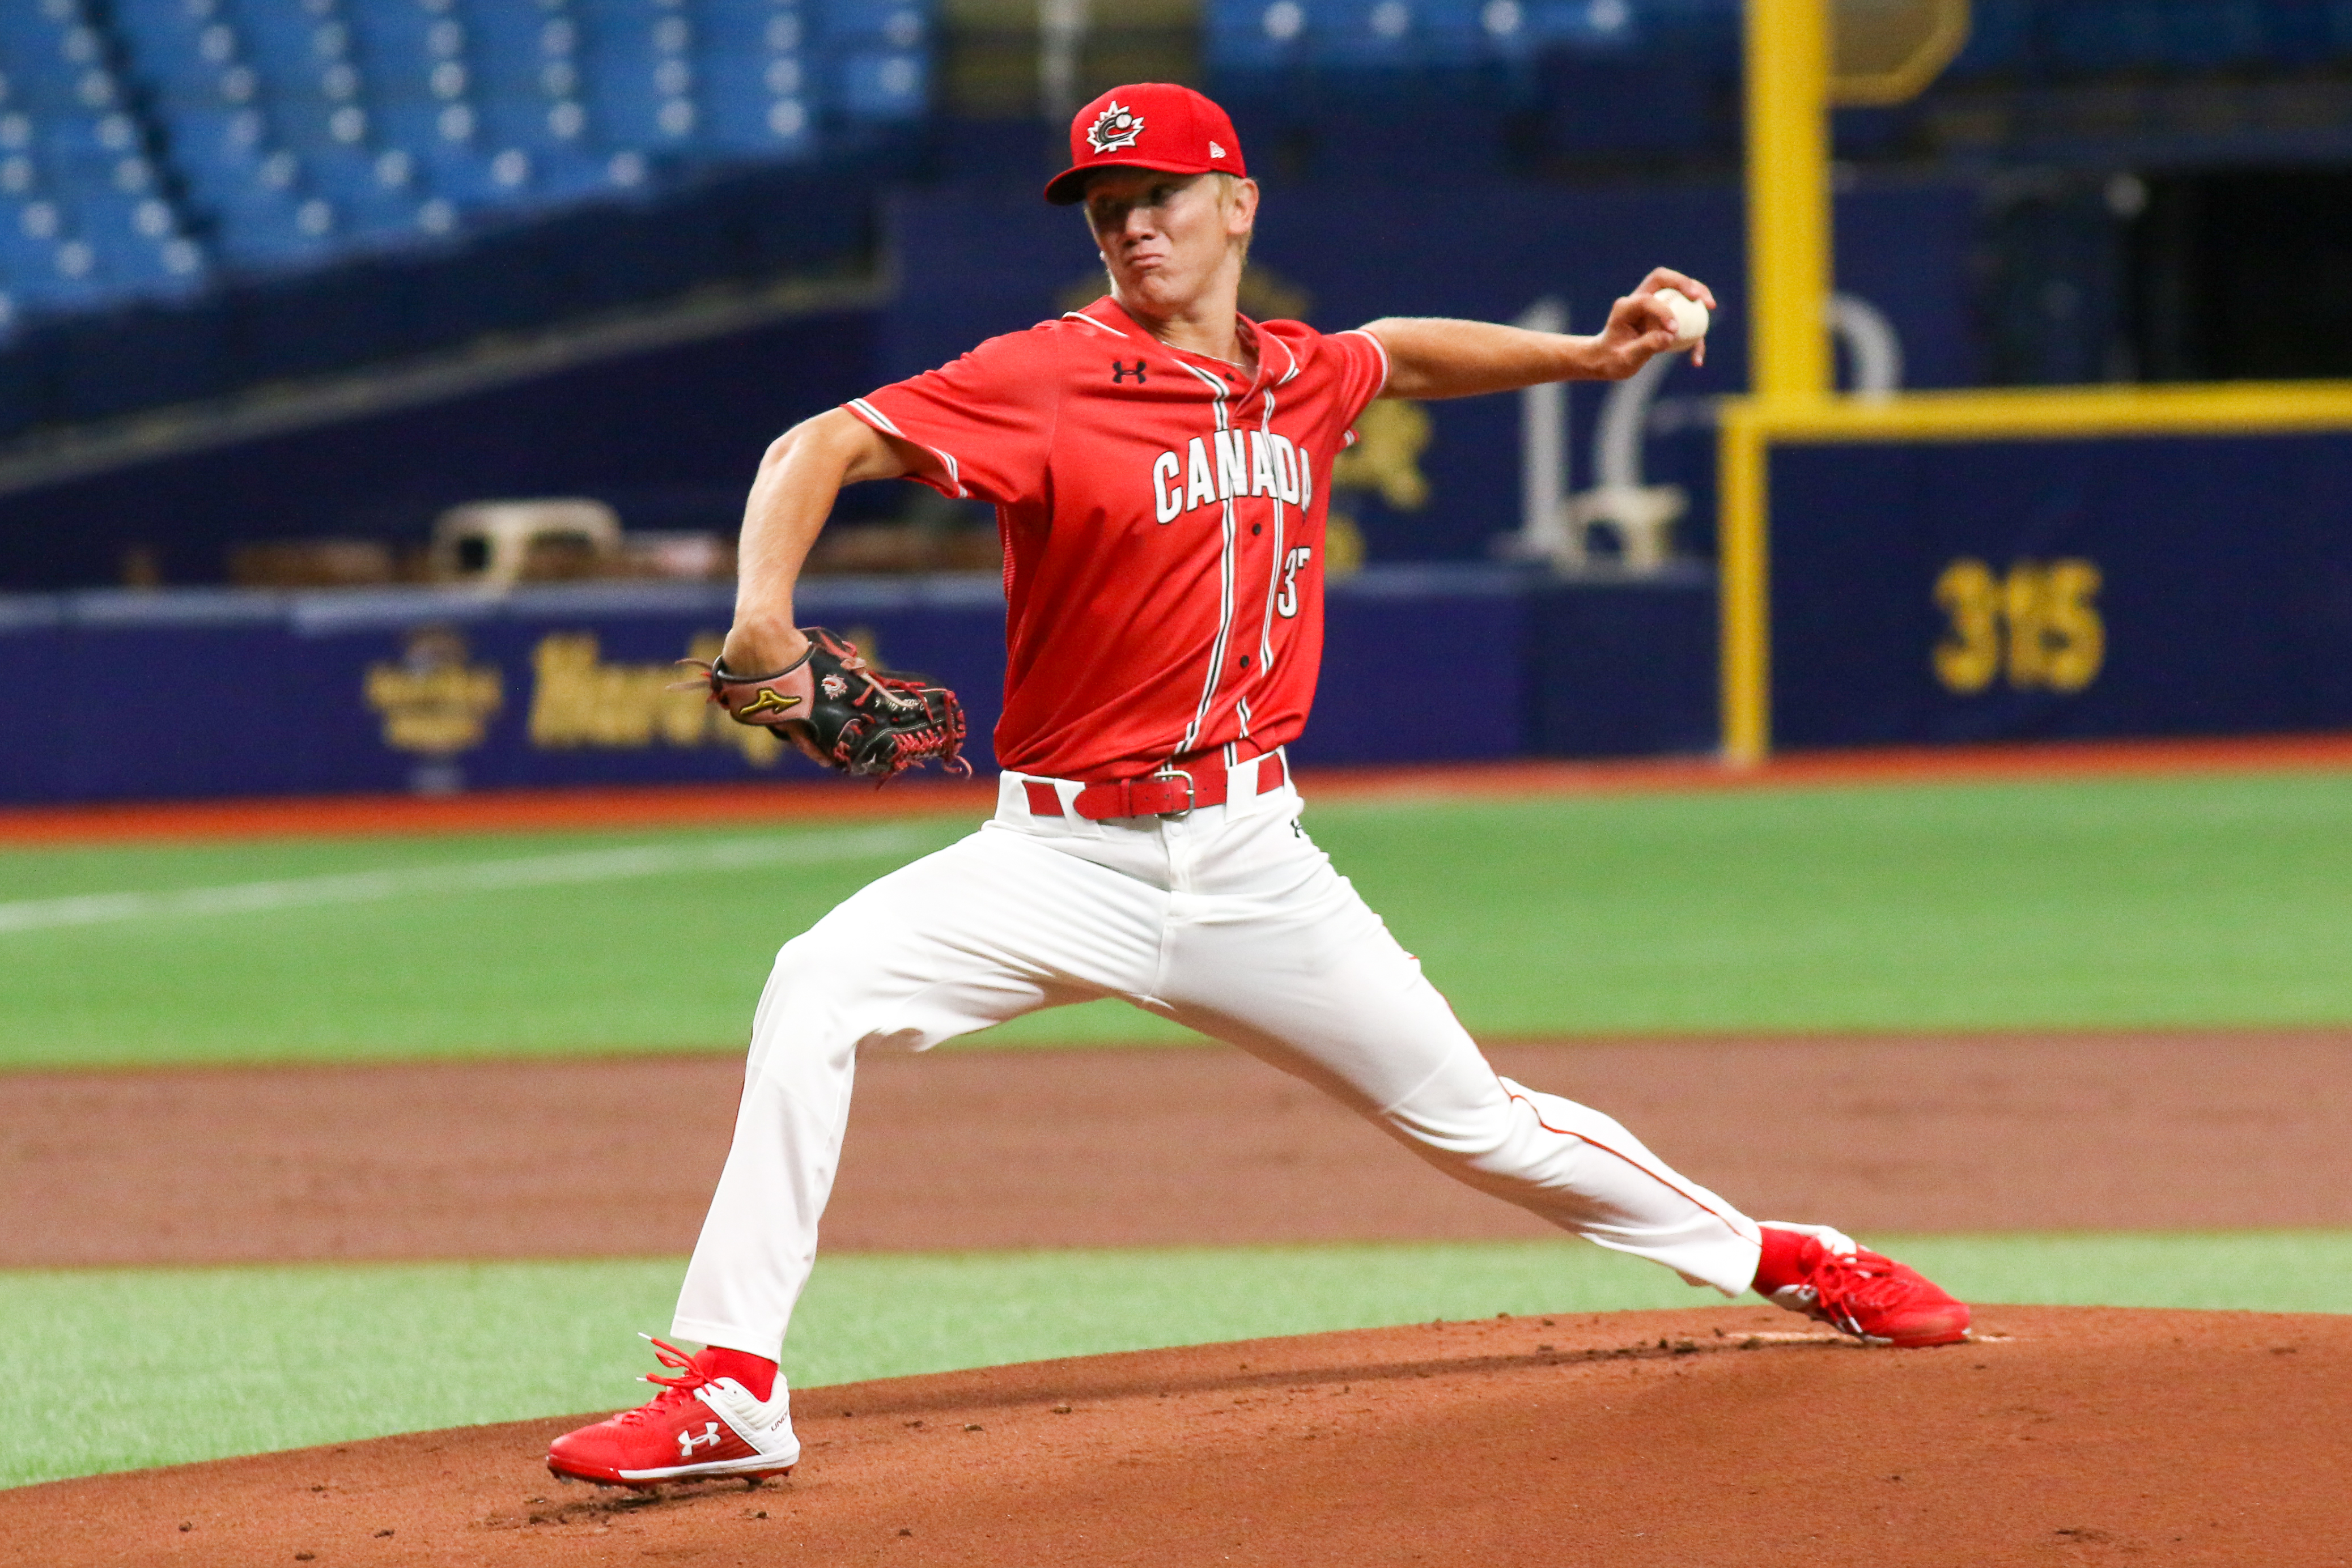 18U Friendship Series: US clinches series with win